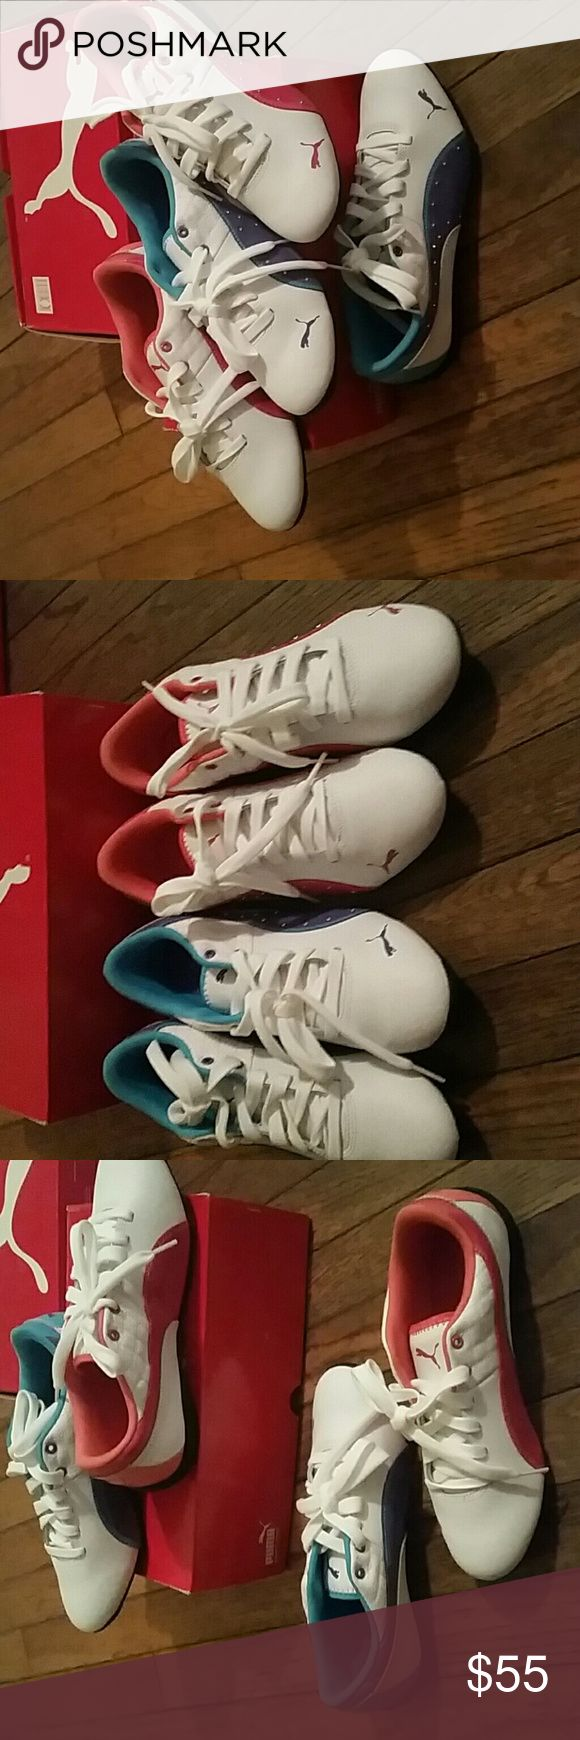 Puma Drift Cat Ladies/Bigkids Sneakers Low top 2 pair sold as set only Puma Shoes Sneakers